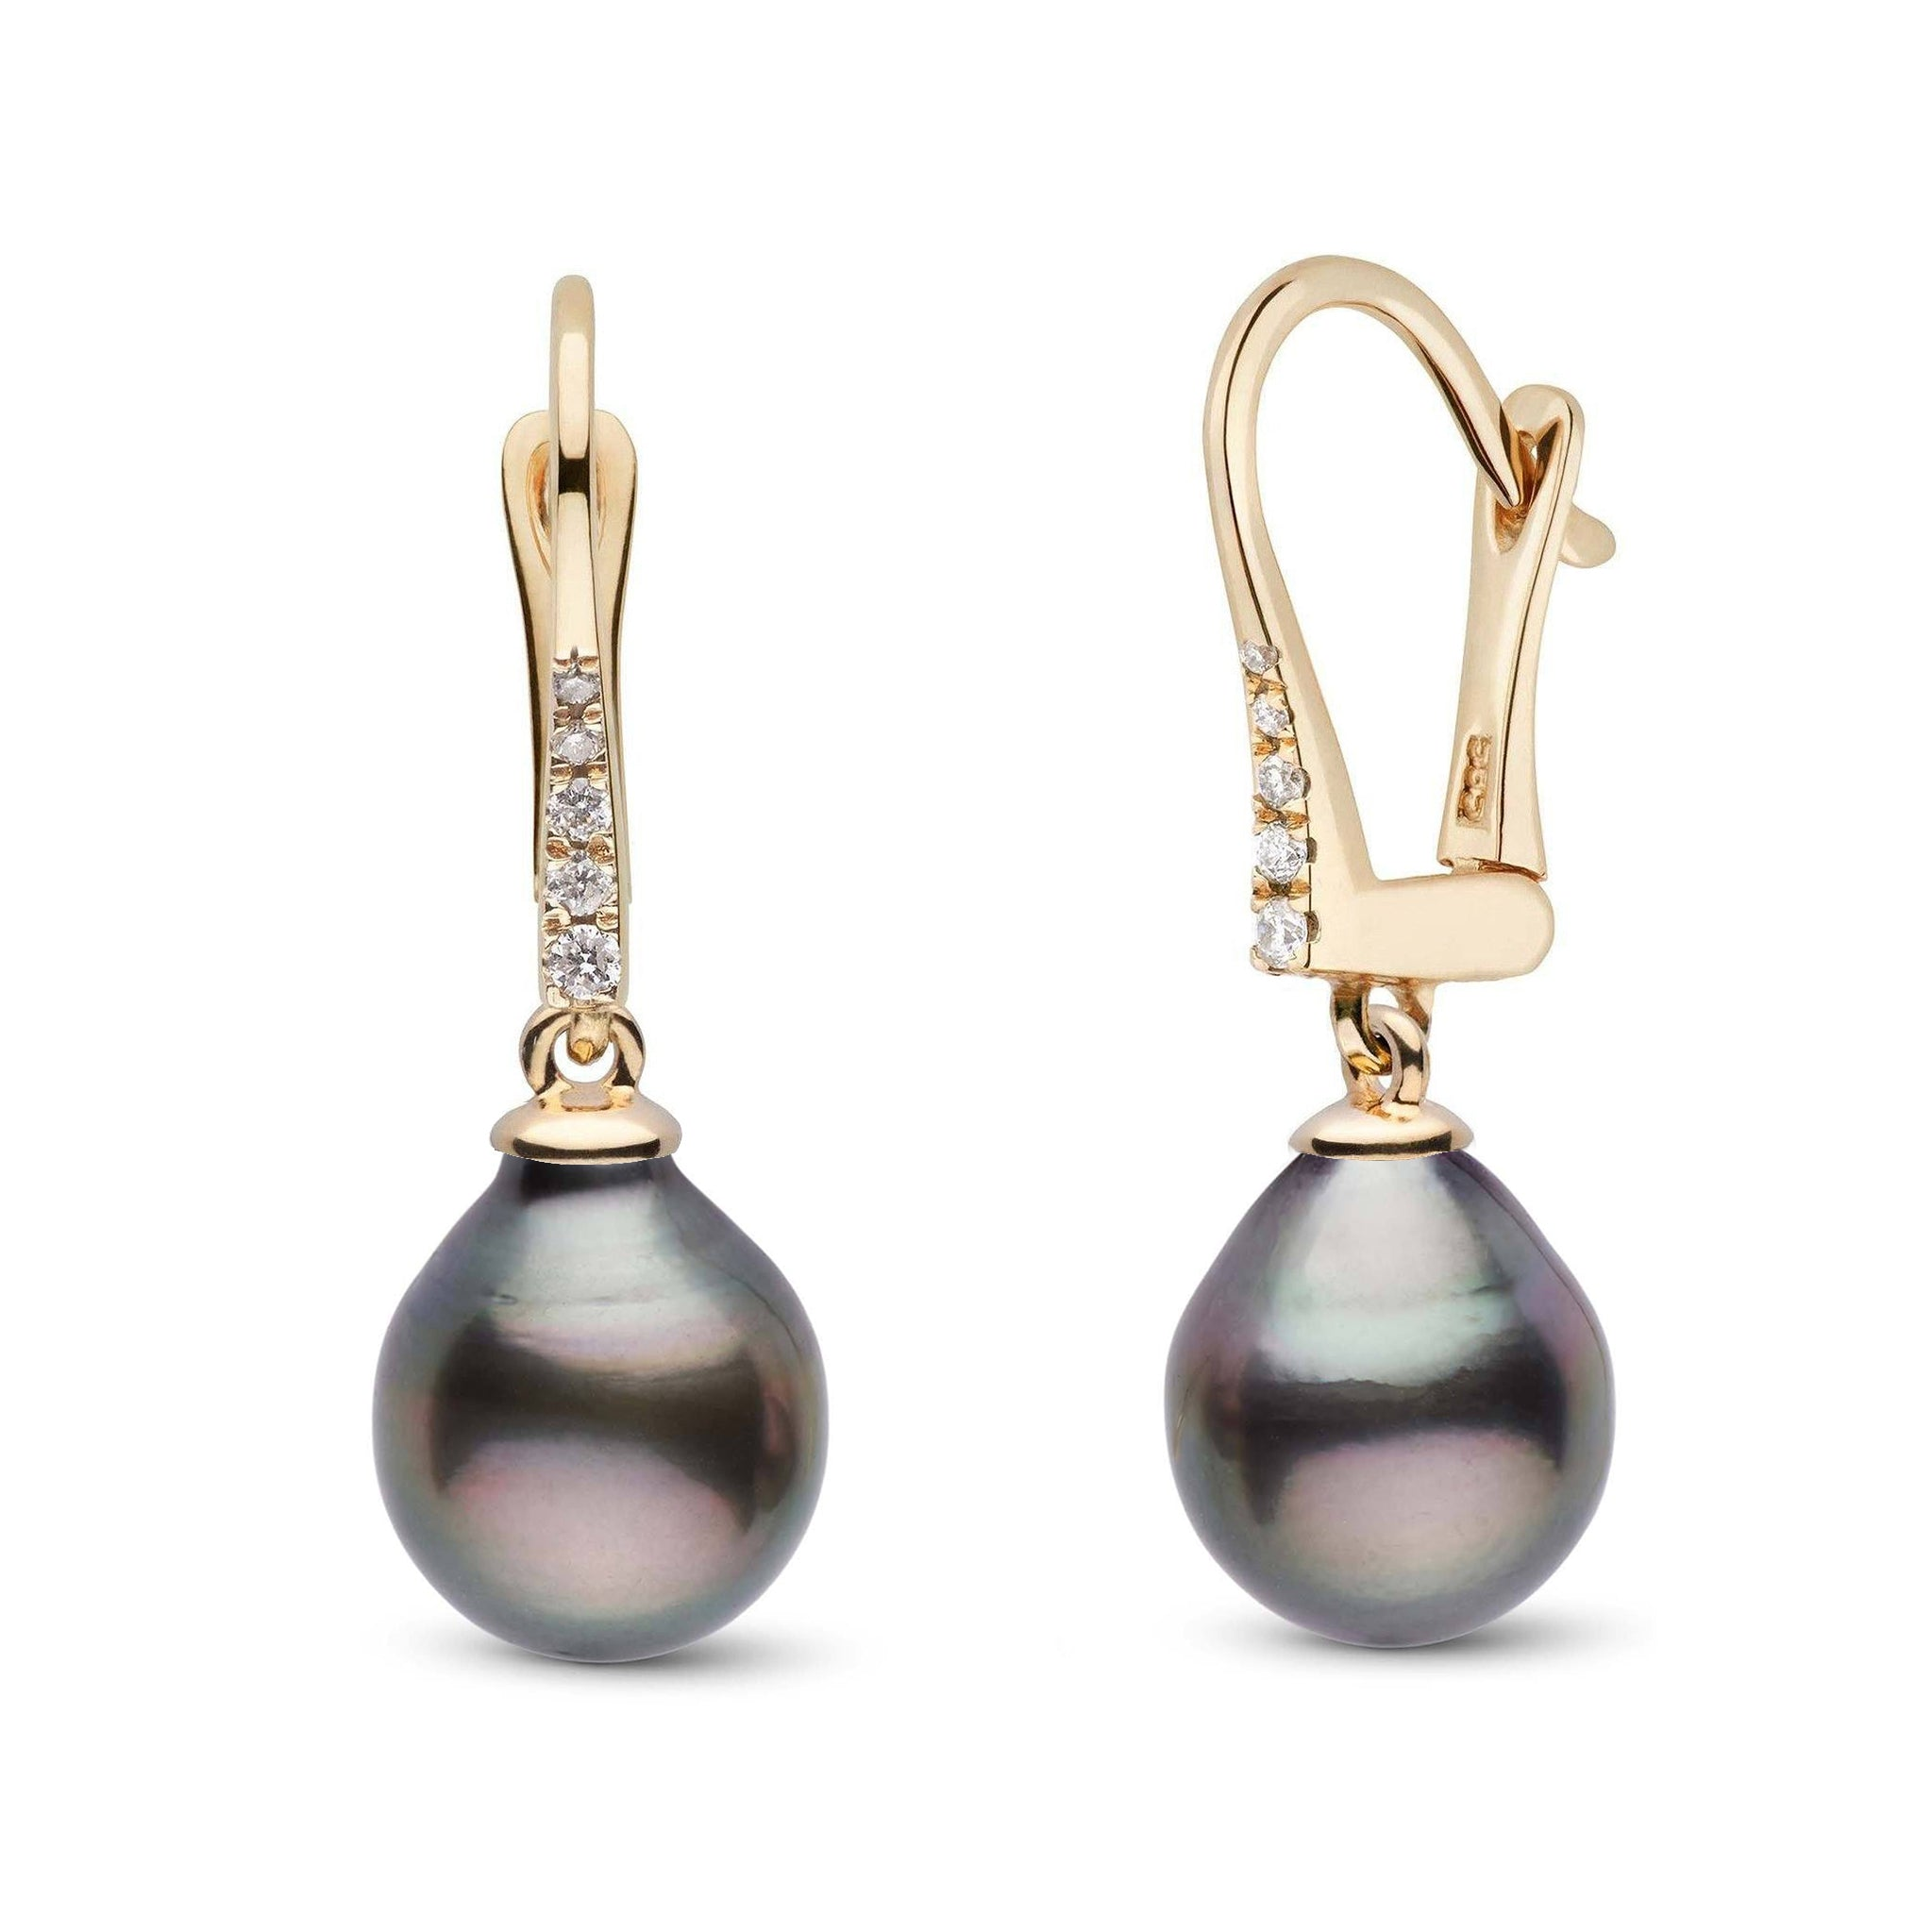 Allure Collection Tahitian Drop 8.0-9.0 mm Pearl & Diamond Dangle Earrings